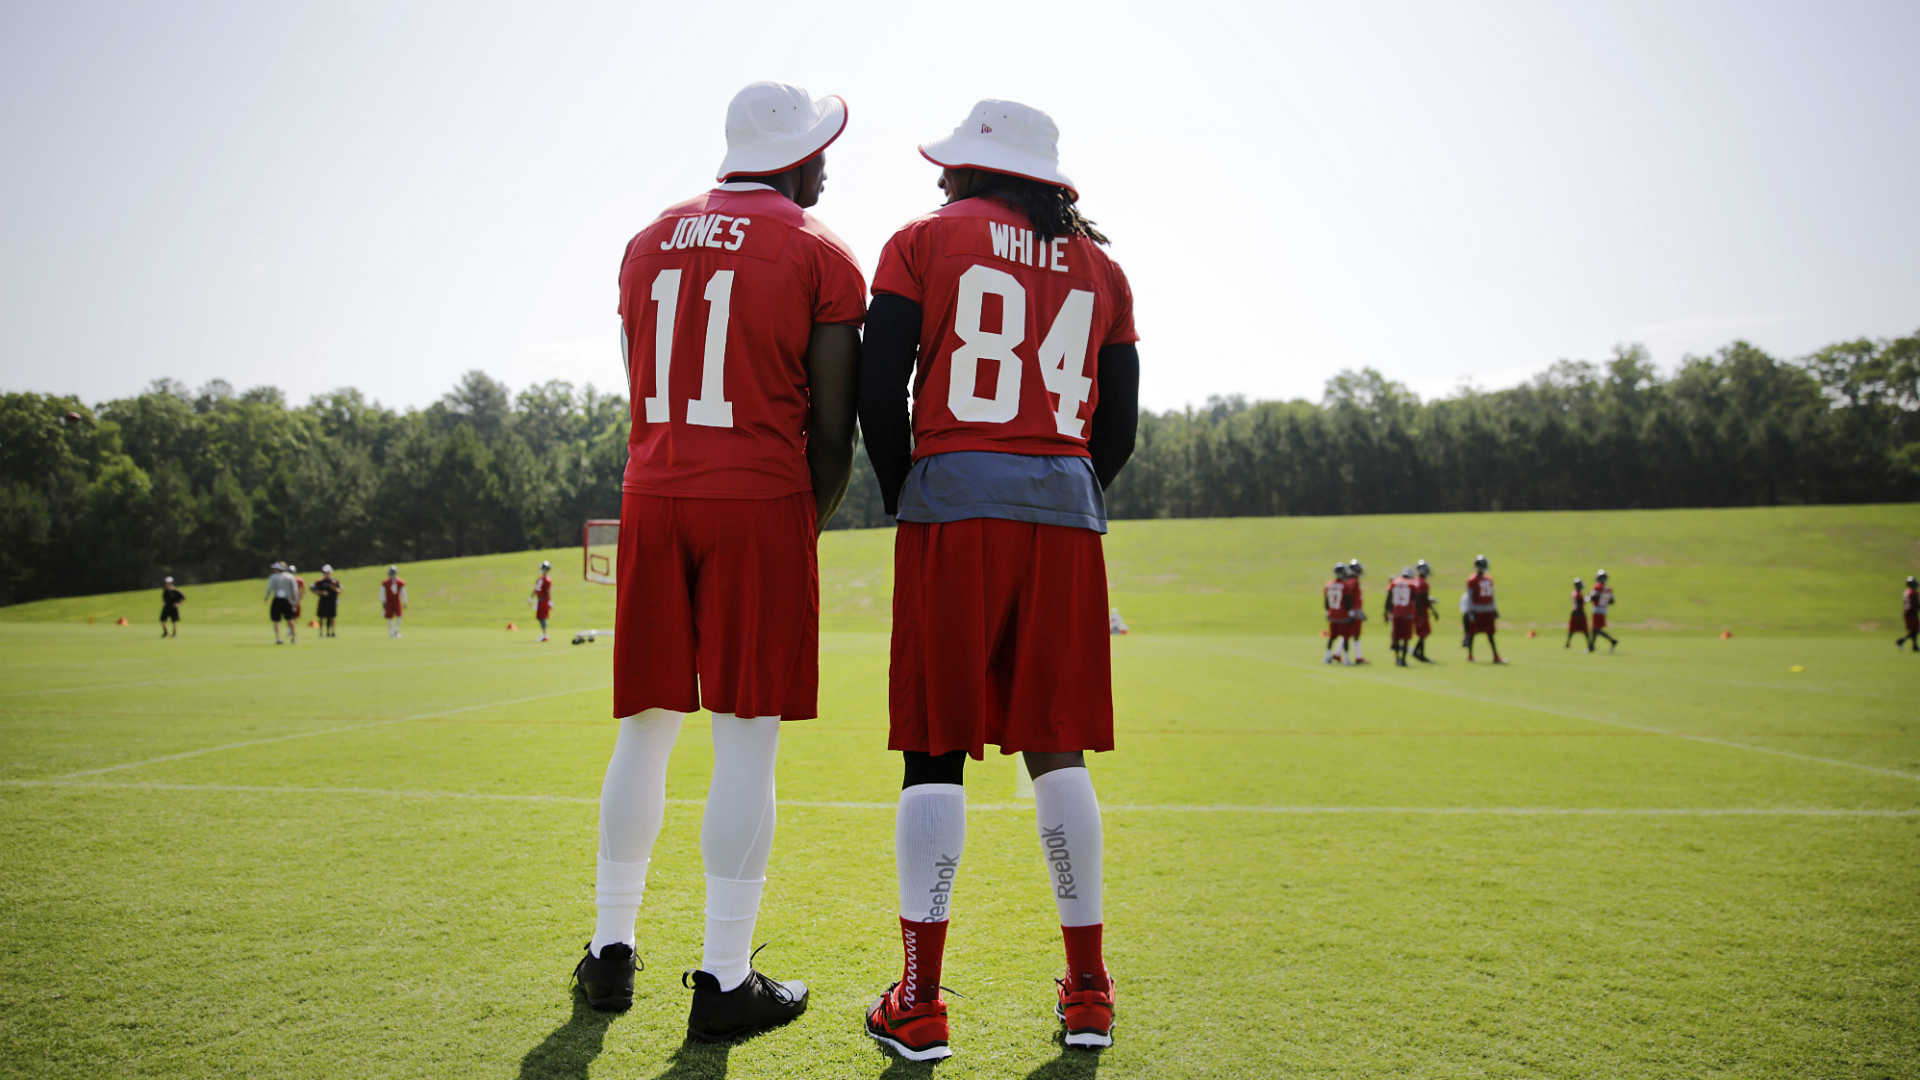 Julio Jones-Roddy White-070614-AP-FTR.jpg